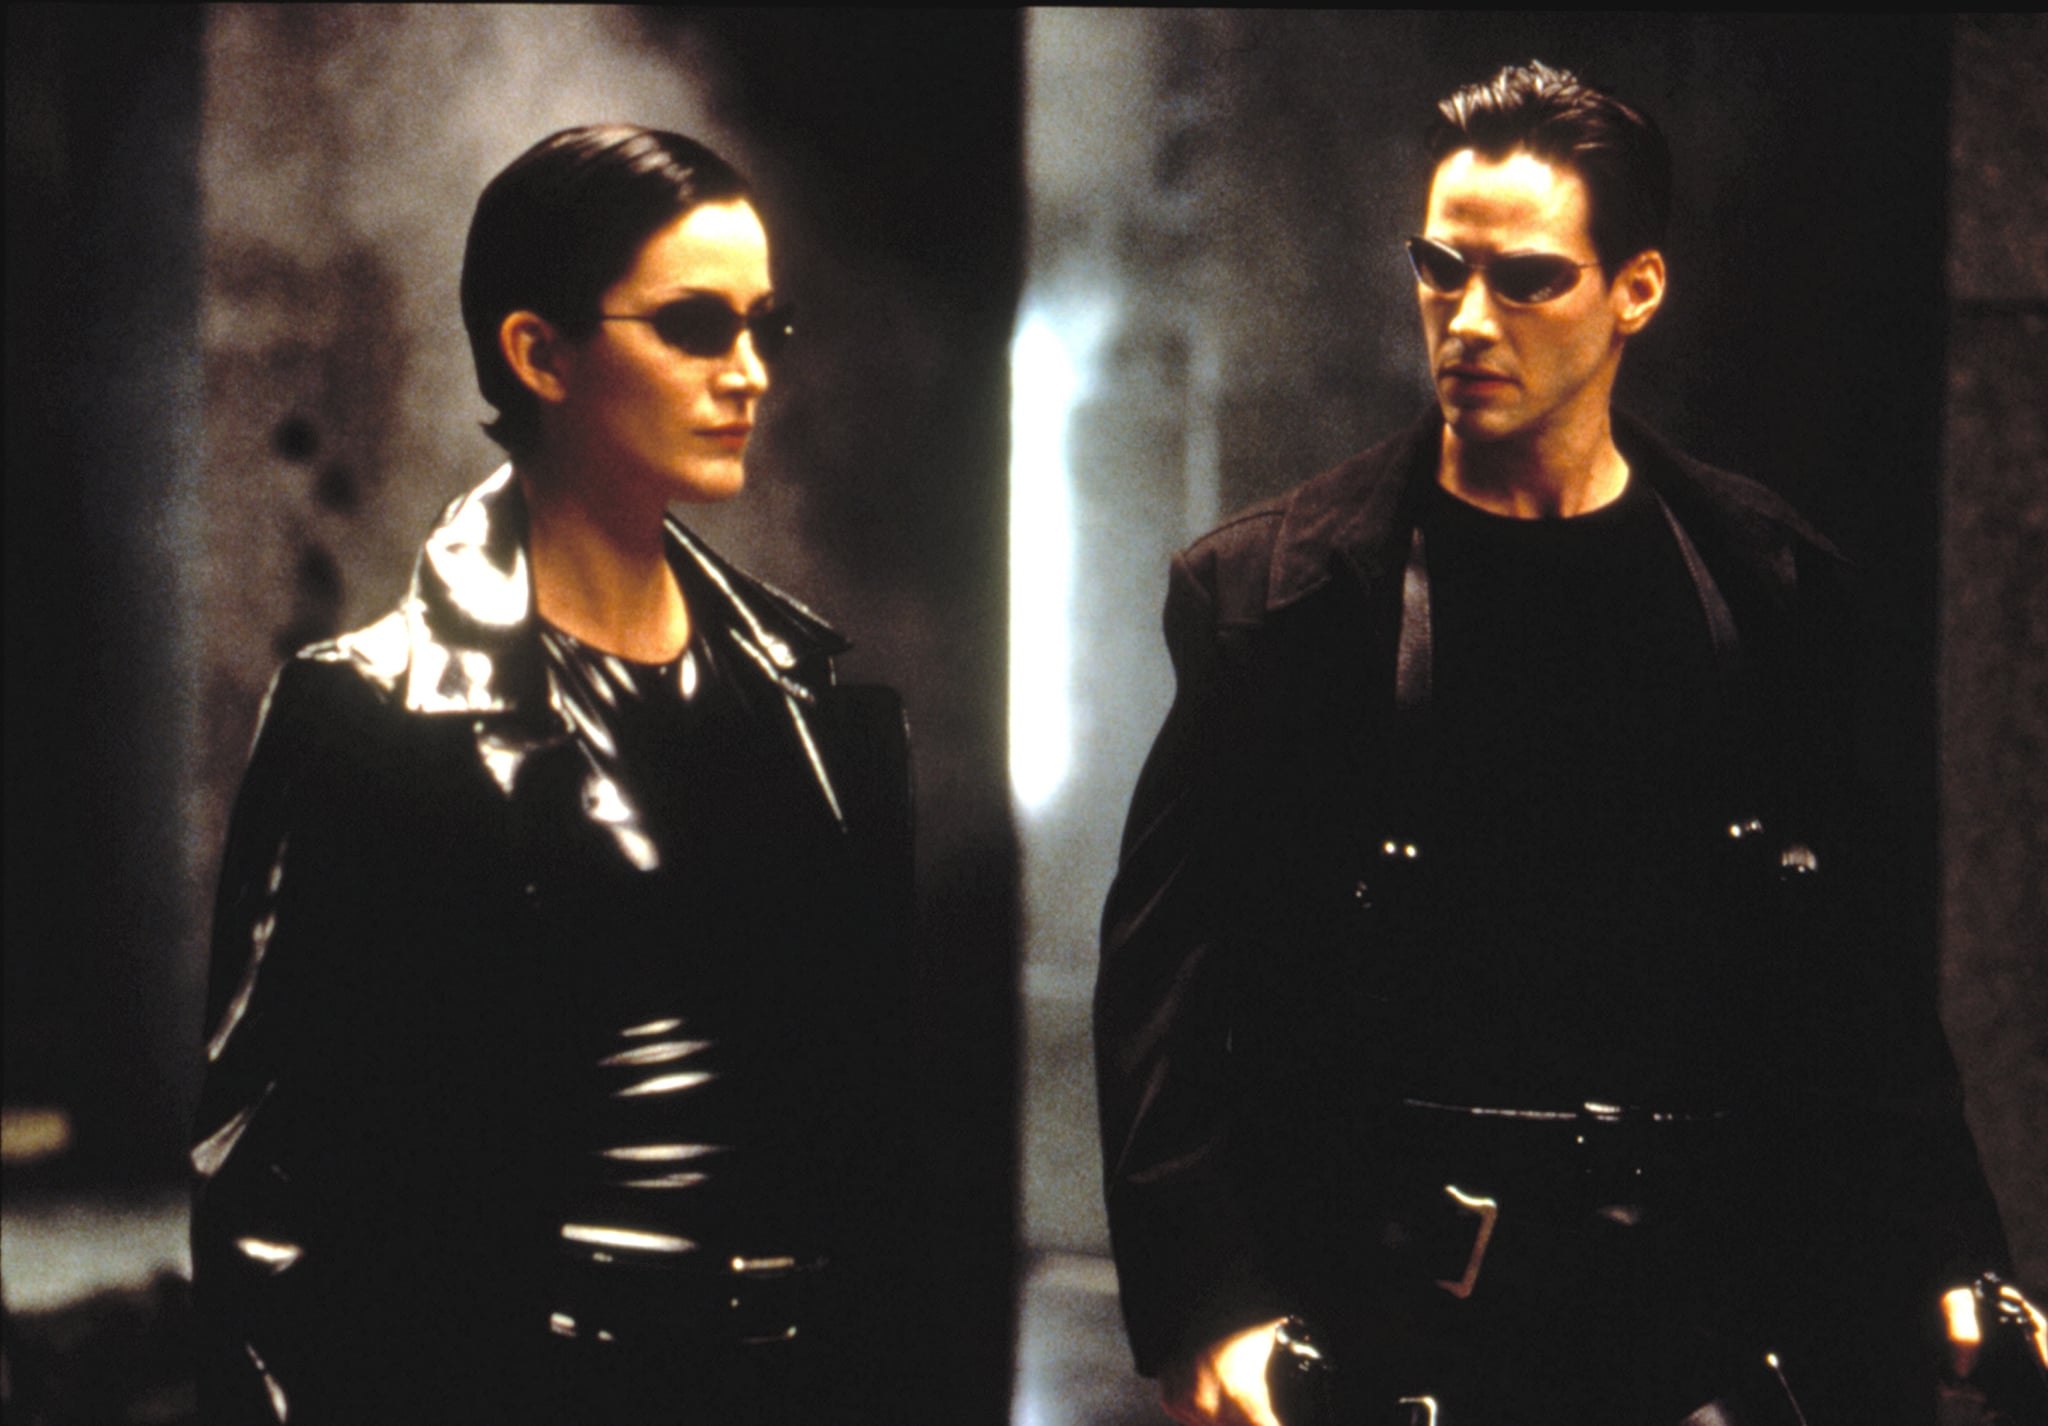 THE MATRIX, Carrie-Anne Moss, Keanu Reeves, 1999. Warner Bros./courtesy Everett Collection